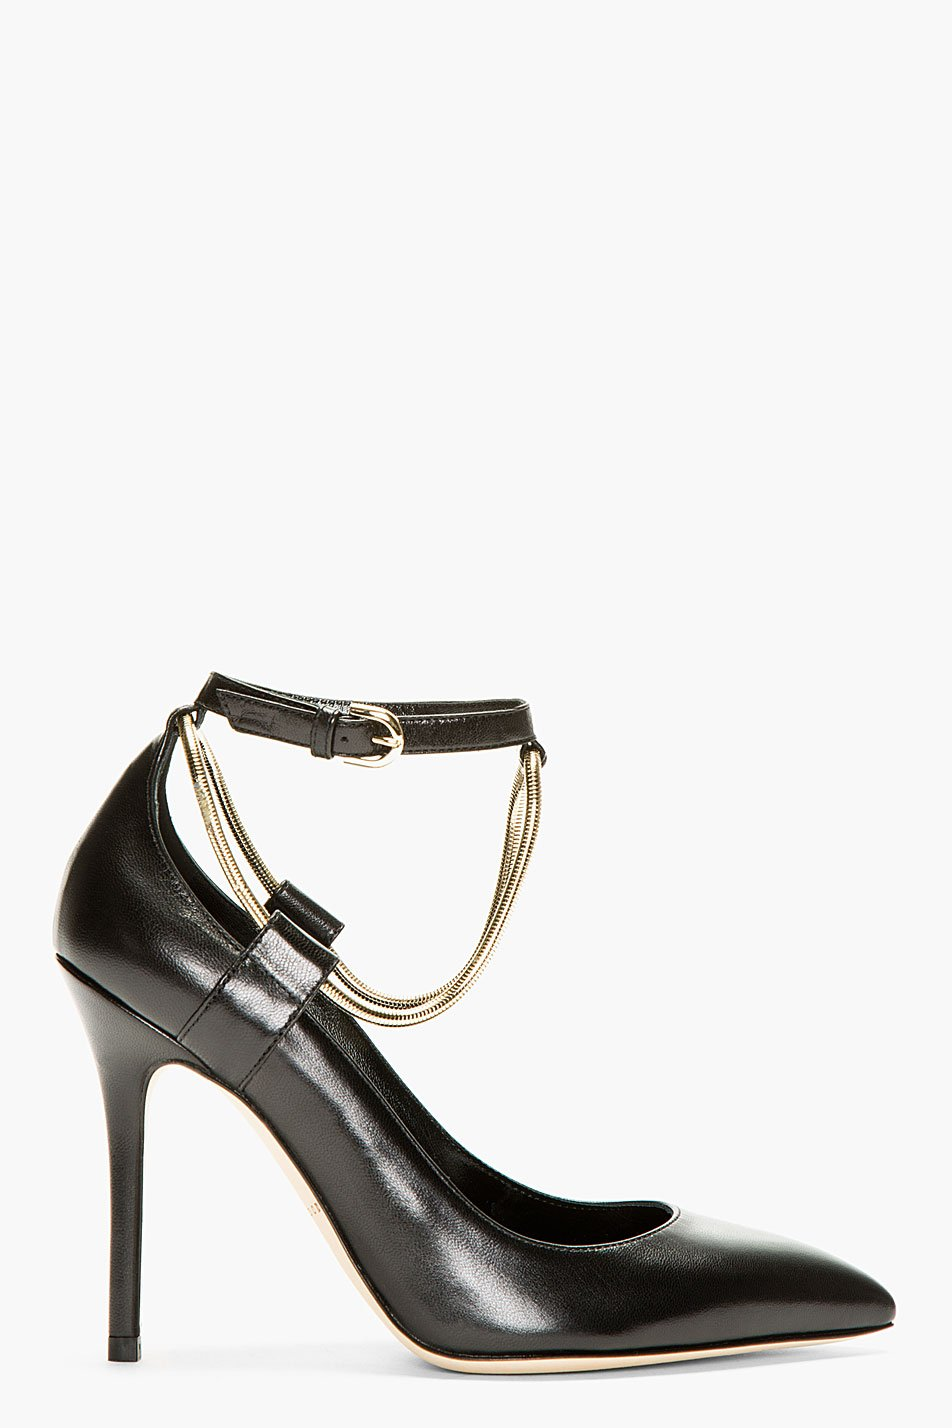 brian atwood black leather chain detail kaela pumps